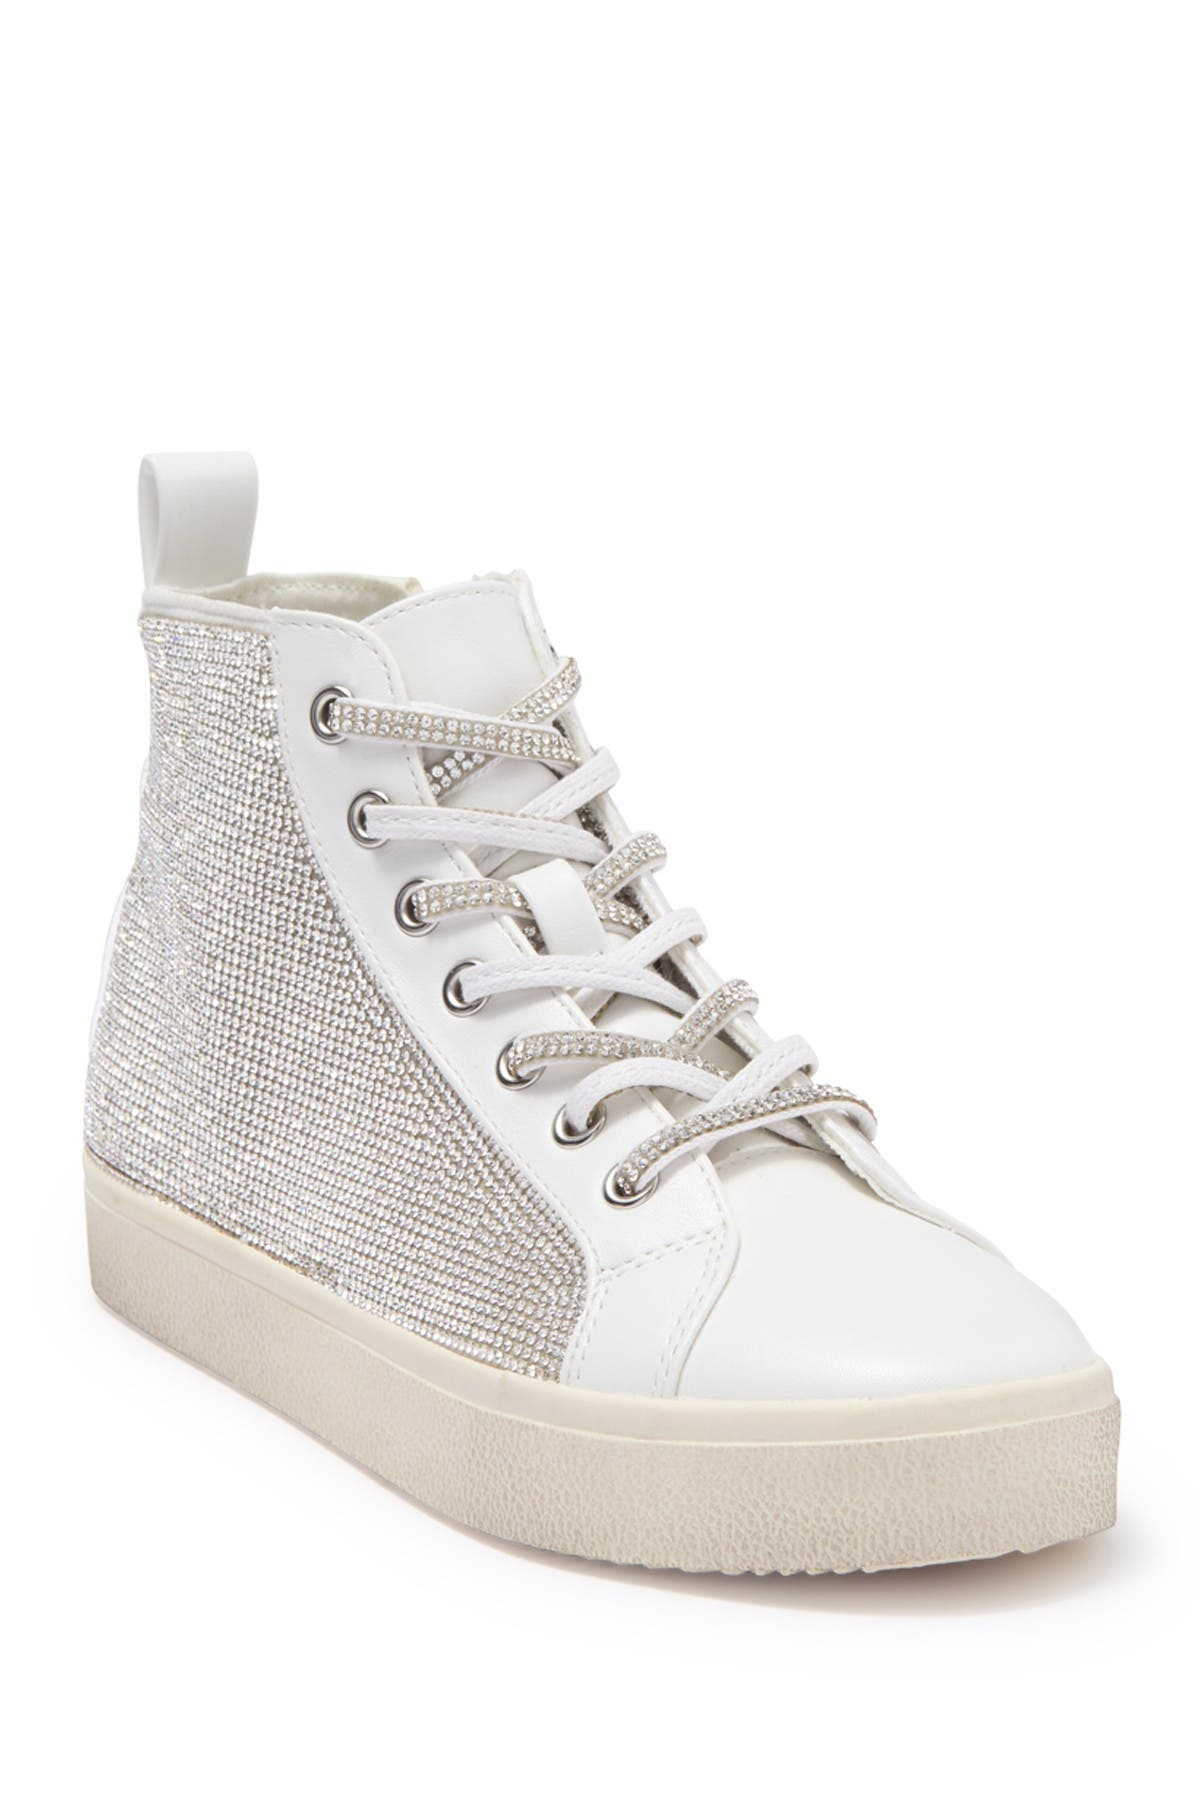 Image of Steve Madden Bondi High Top Sneaker